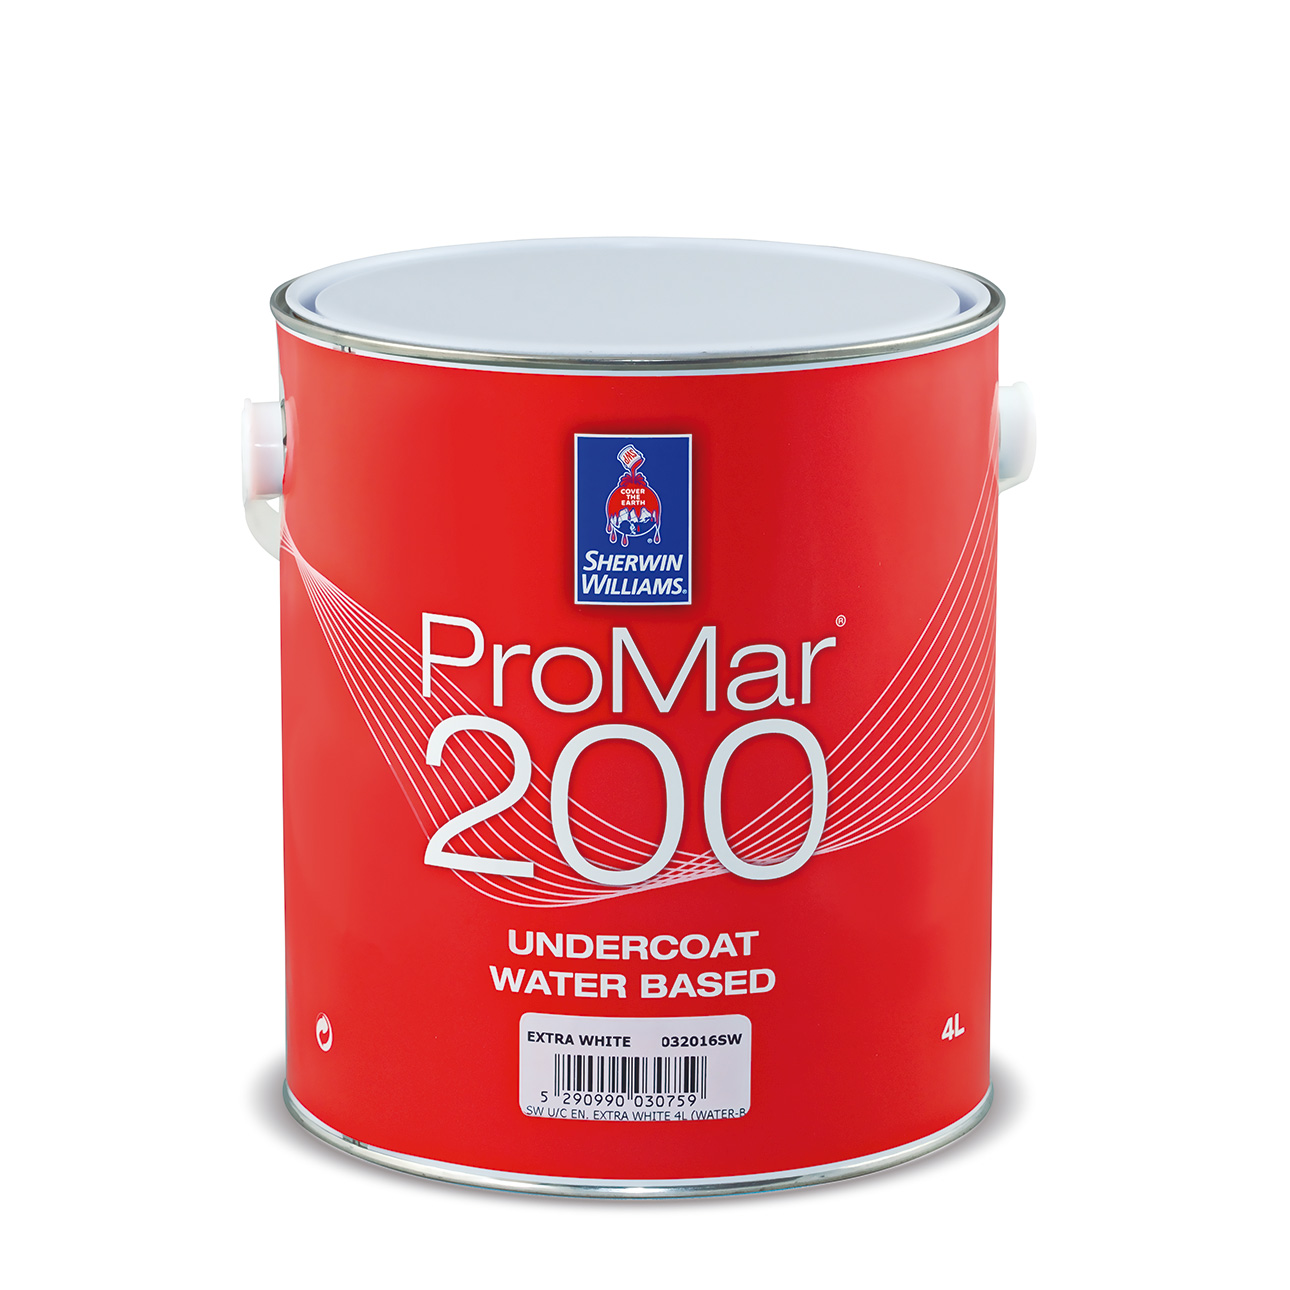 SHERWIN-WILLIAMS® PROMAR® 200 UNDERCOAT WATER BASED DEEP BASE 4L